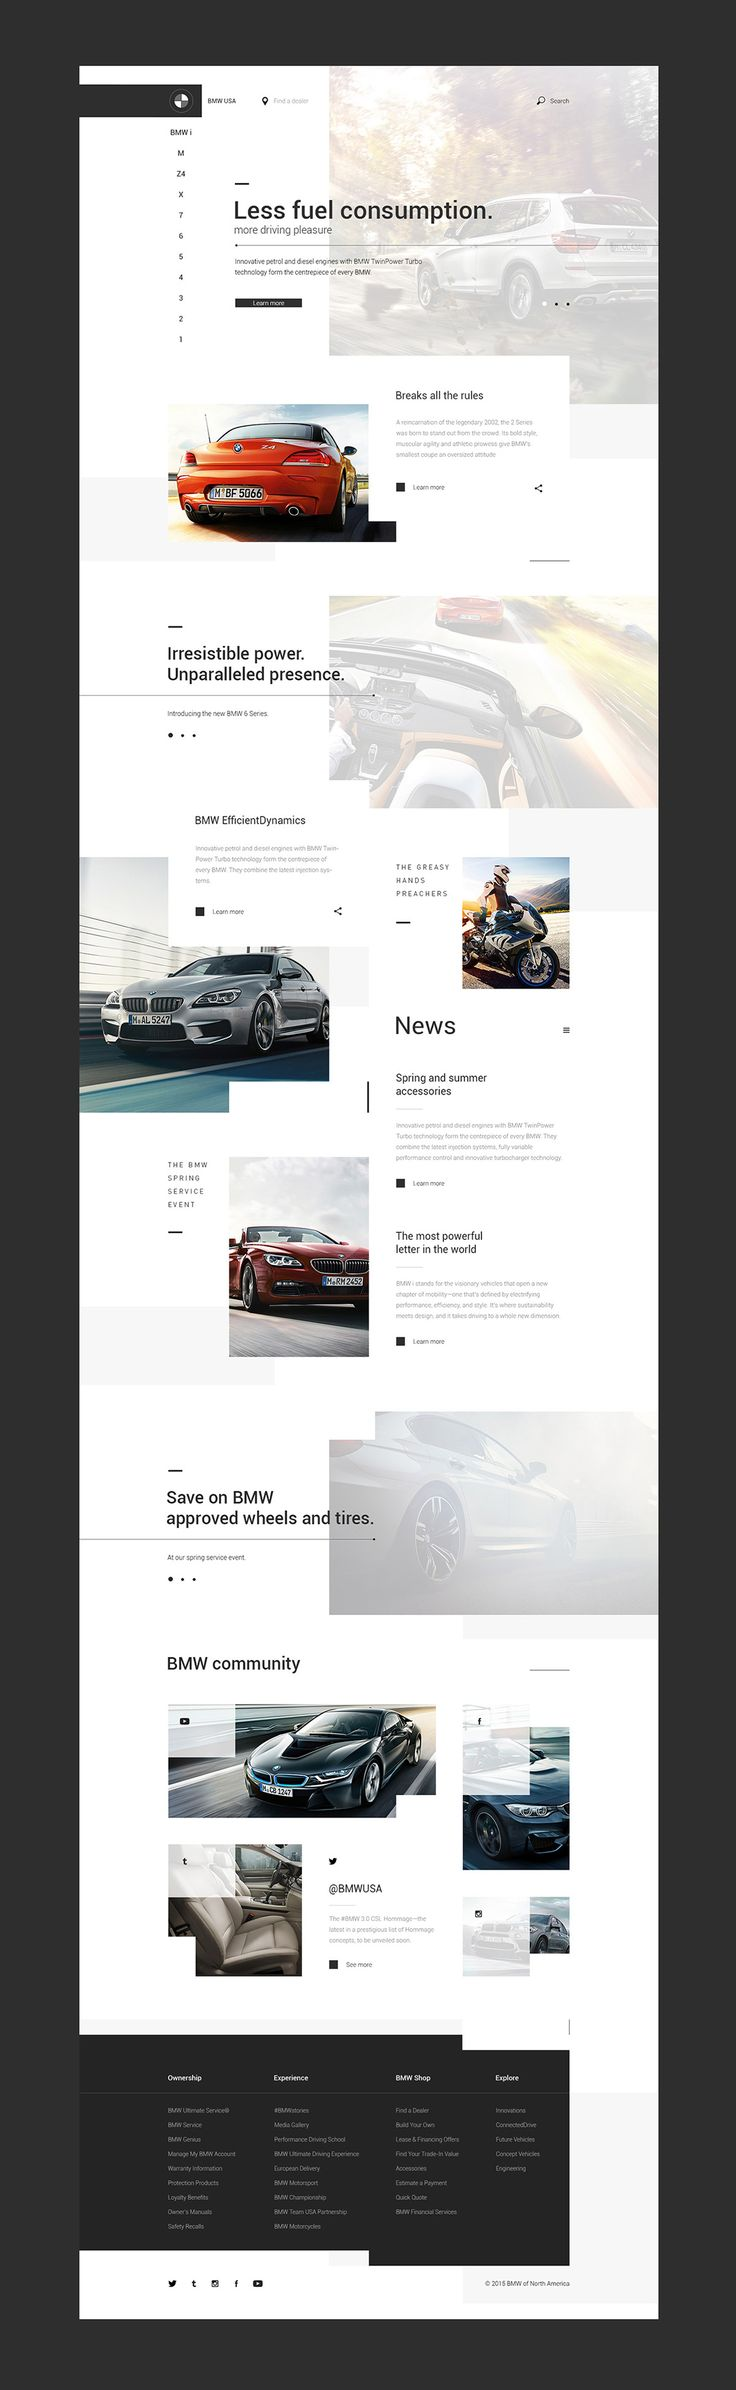 BMW USA website concept on Behance